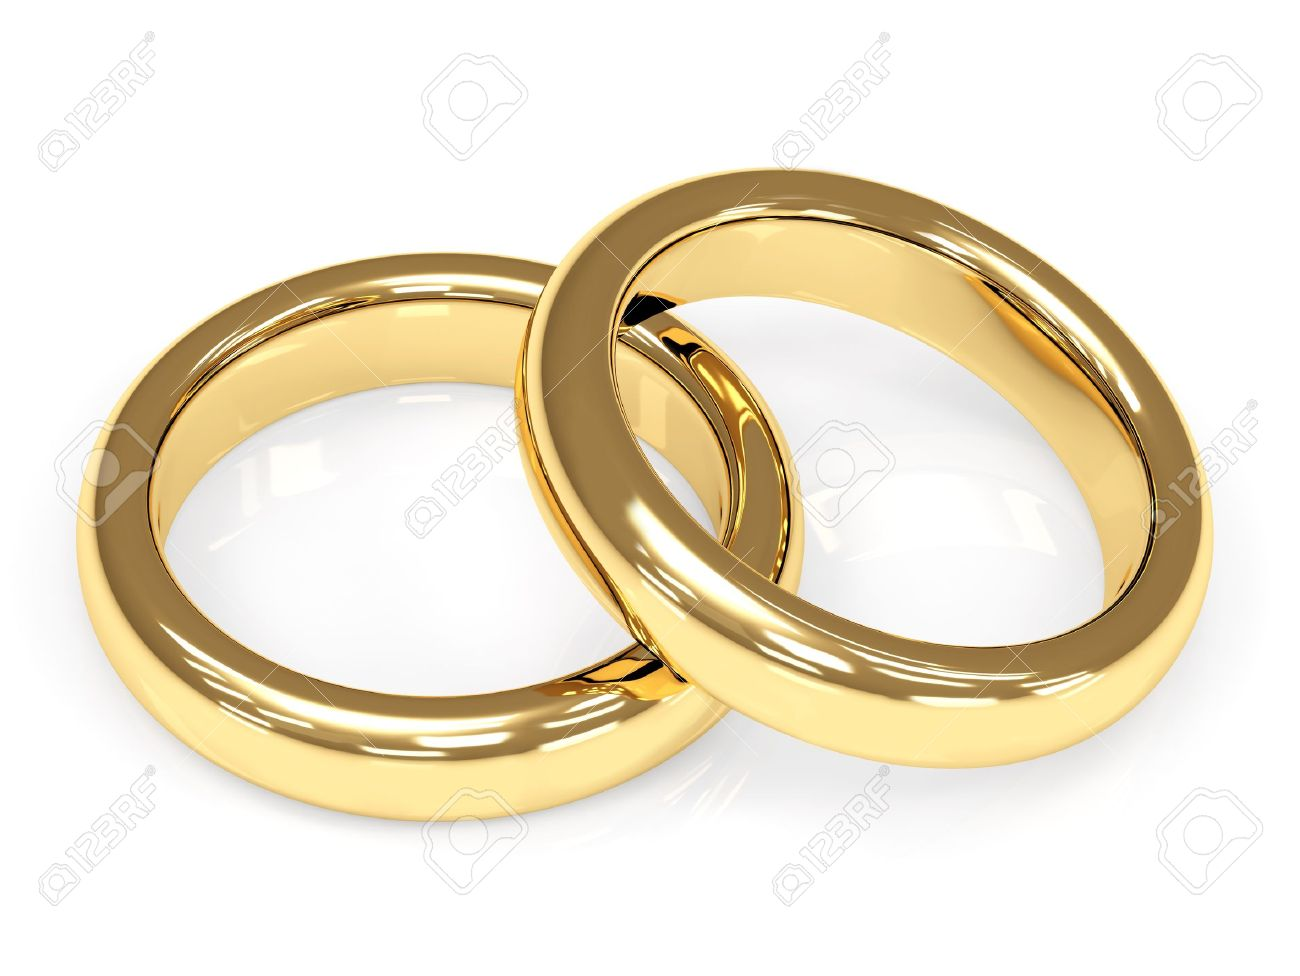 Two 3d gold wedding rings. Objects over white Stock Photo - 8948519